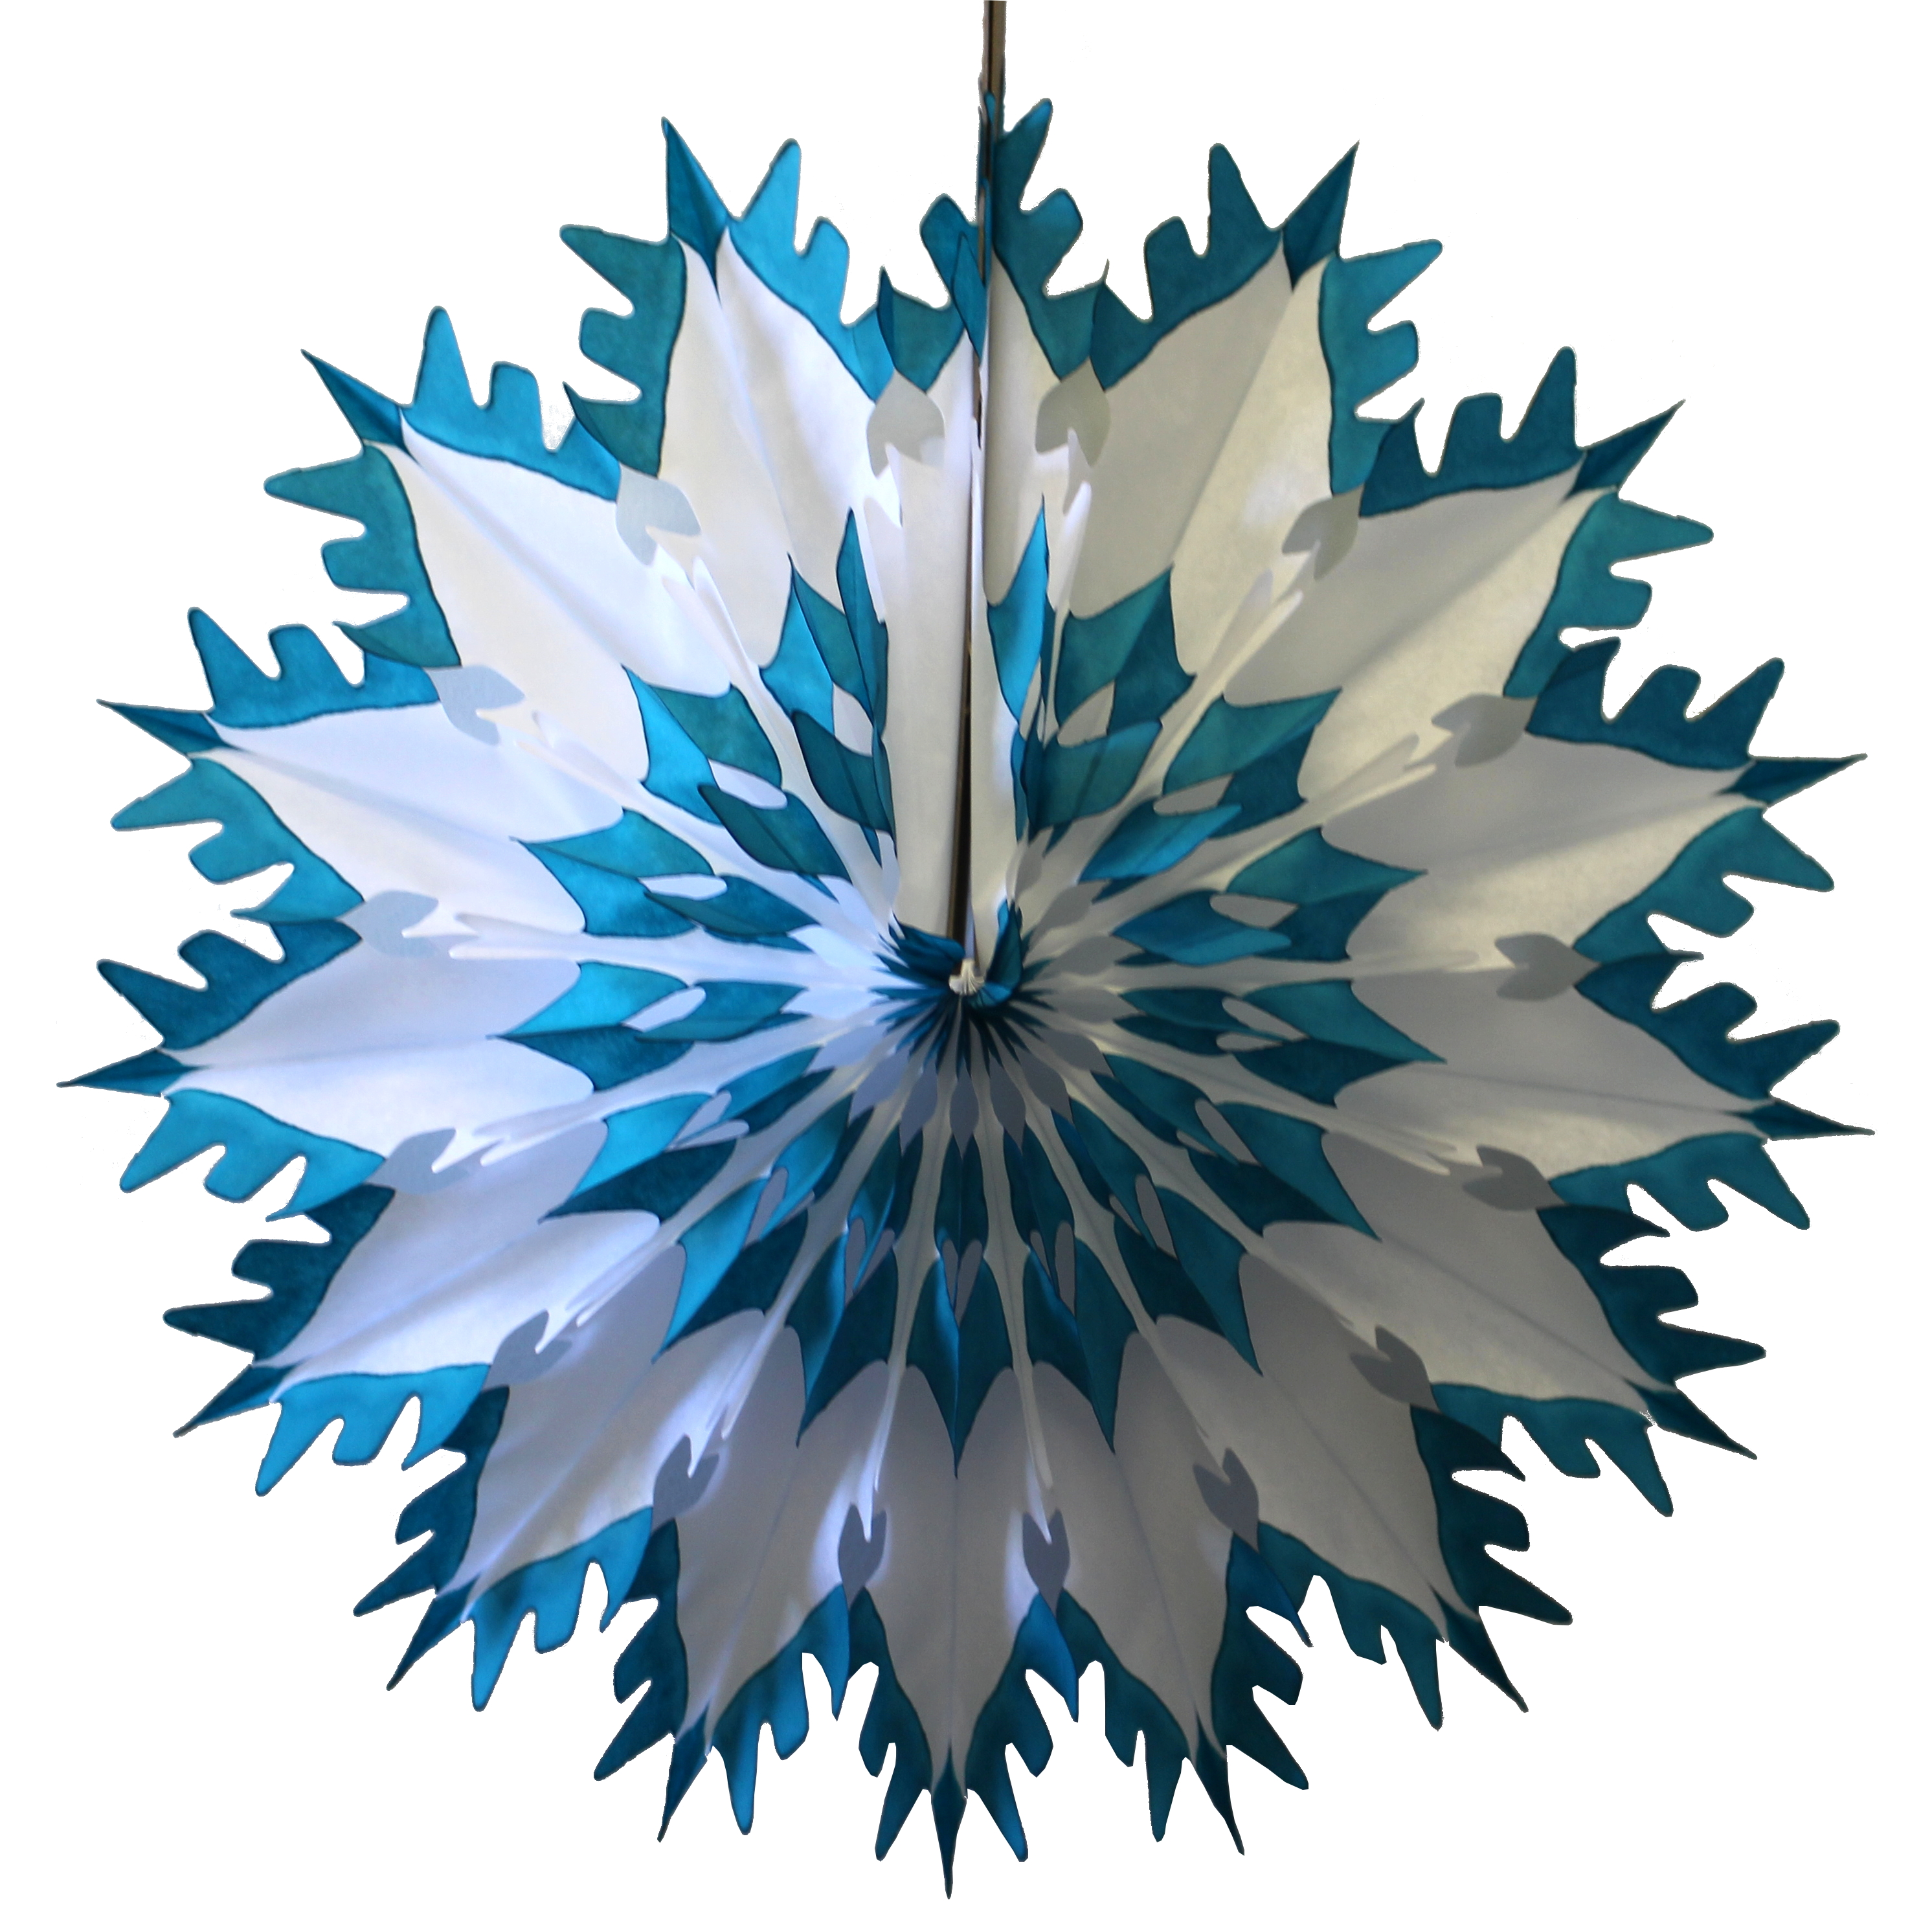 6-Pack Devra Party 19 Inch Tissue Paper Snowflake Decoration, Teal Green Tip